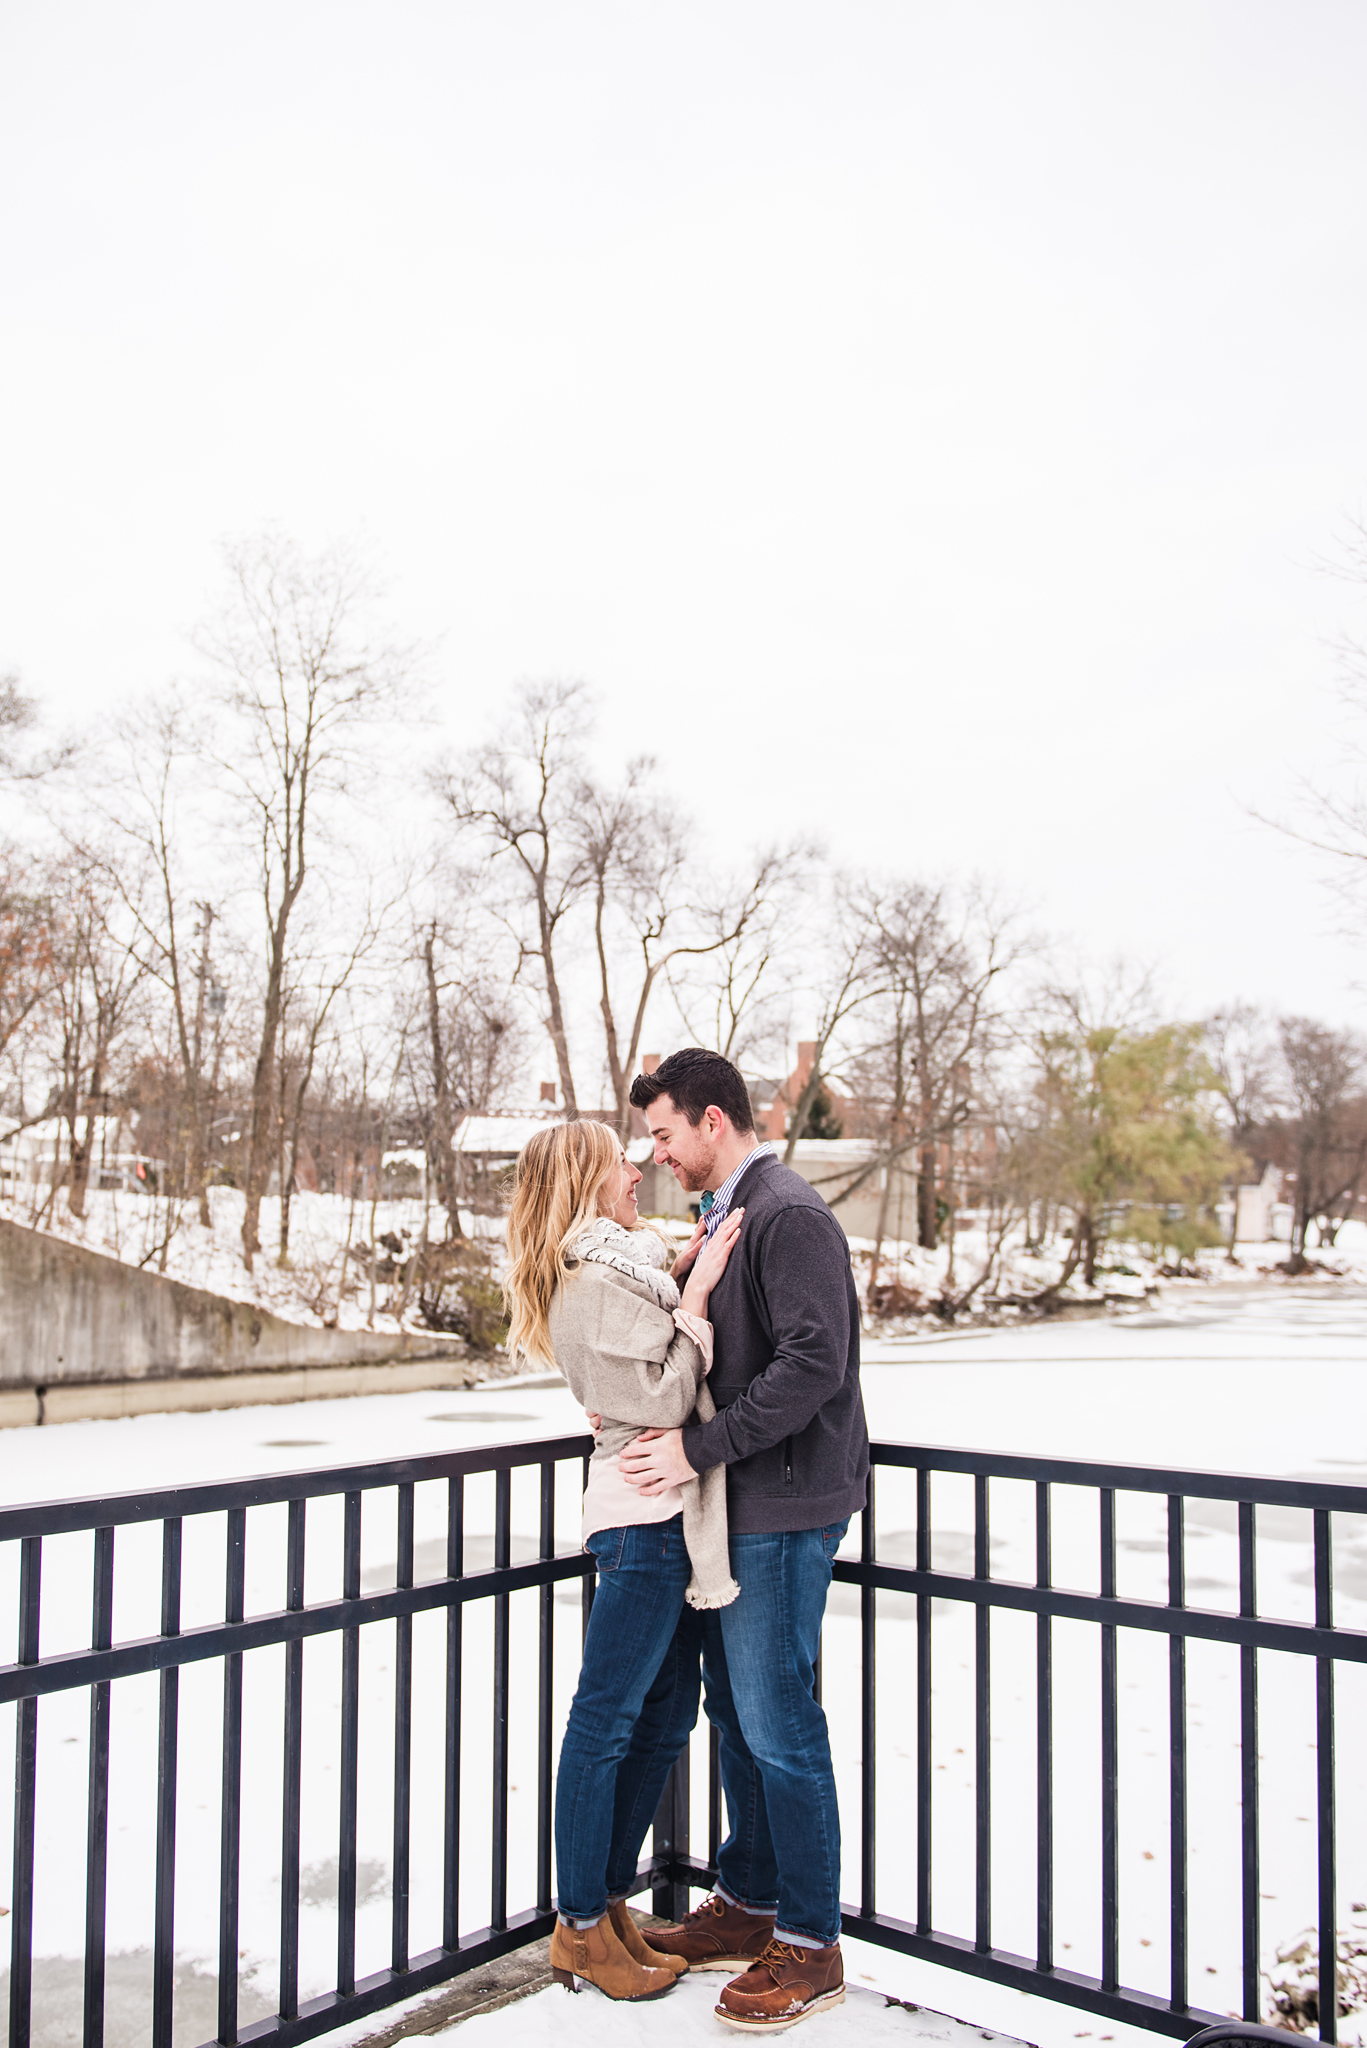 Schoen_Place_Rochester_Engagement_Session_JILL_STUDIO_Rochester_NY_Photographer_DSC_1274.jpg